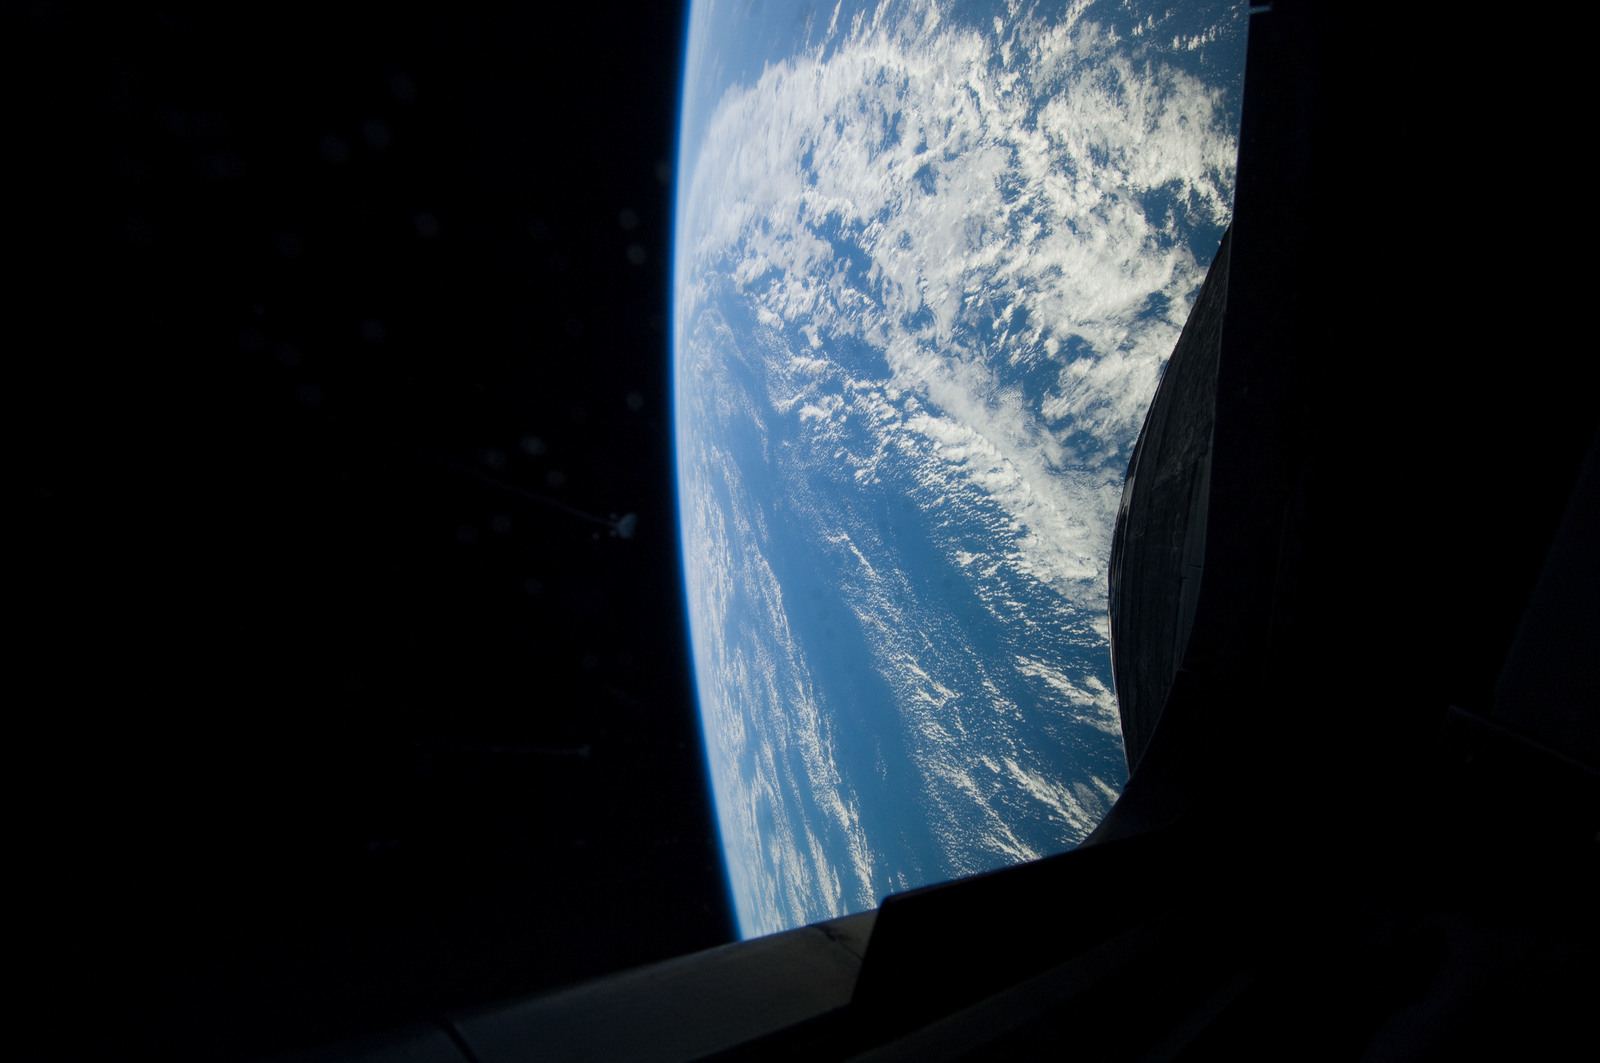 s133E006954 - STS-133 - Earth Observation taken by the STS-133 crew